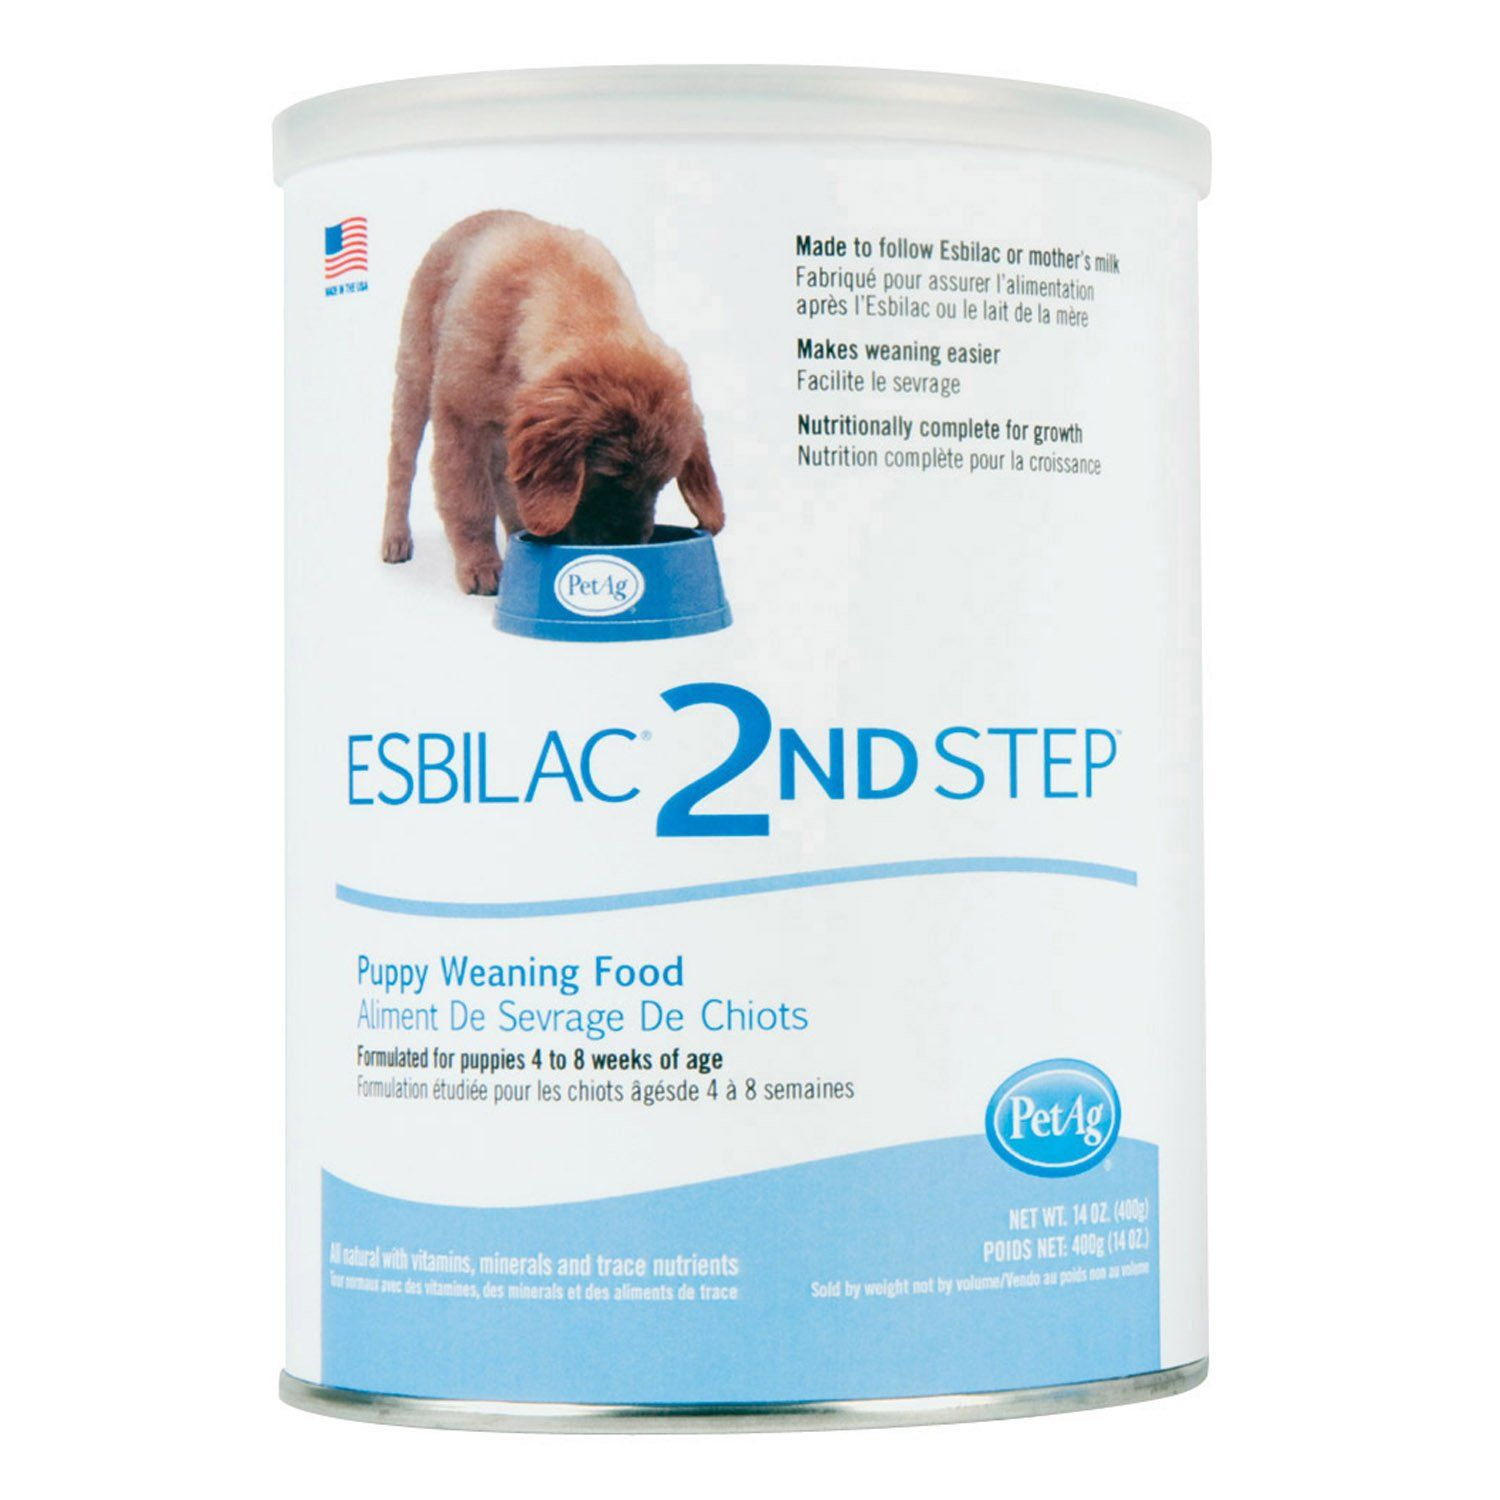 PetAg Esbilac 2nd Step Puppy Weaning Food Weaning foods